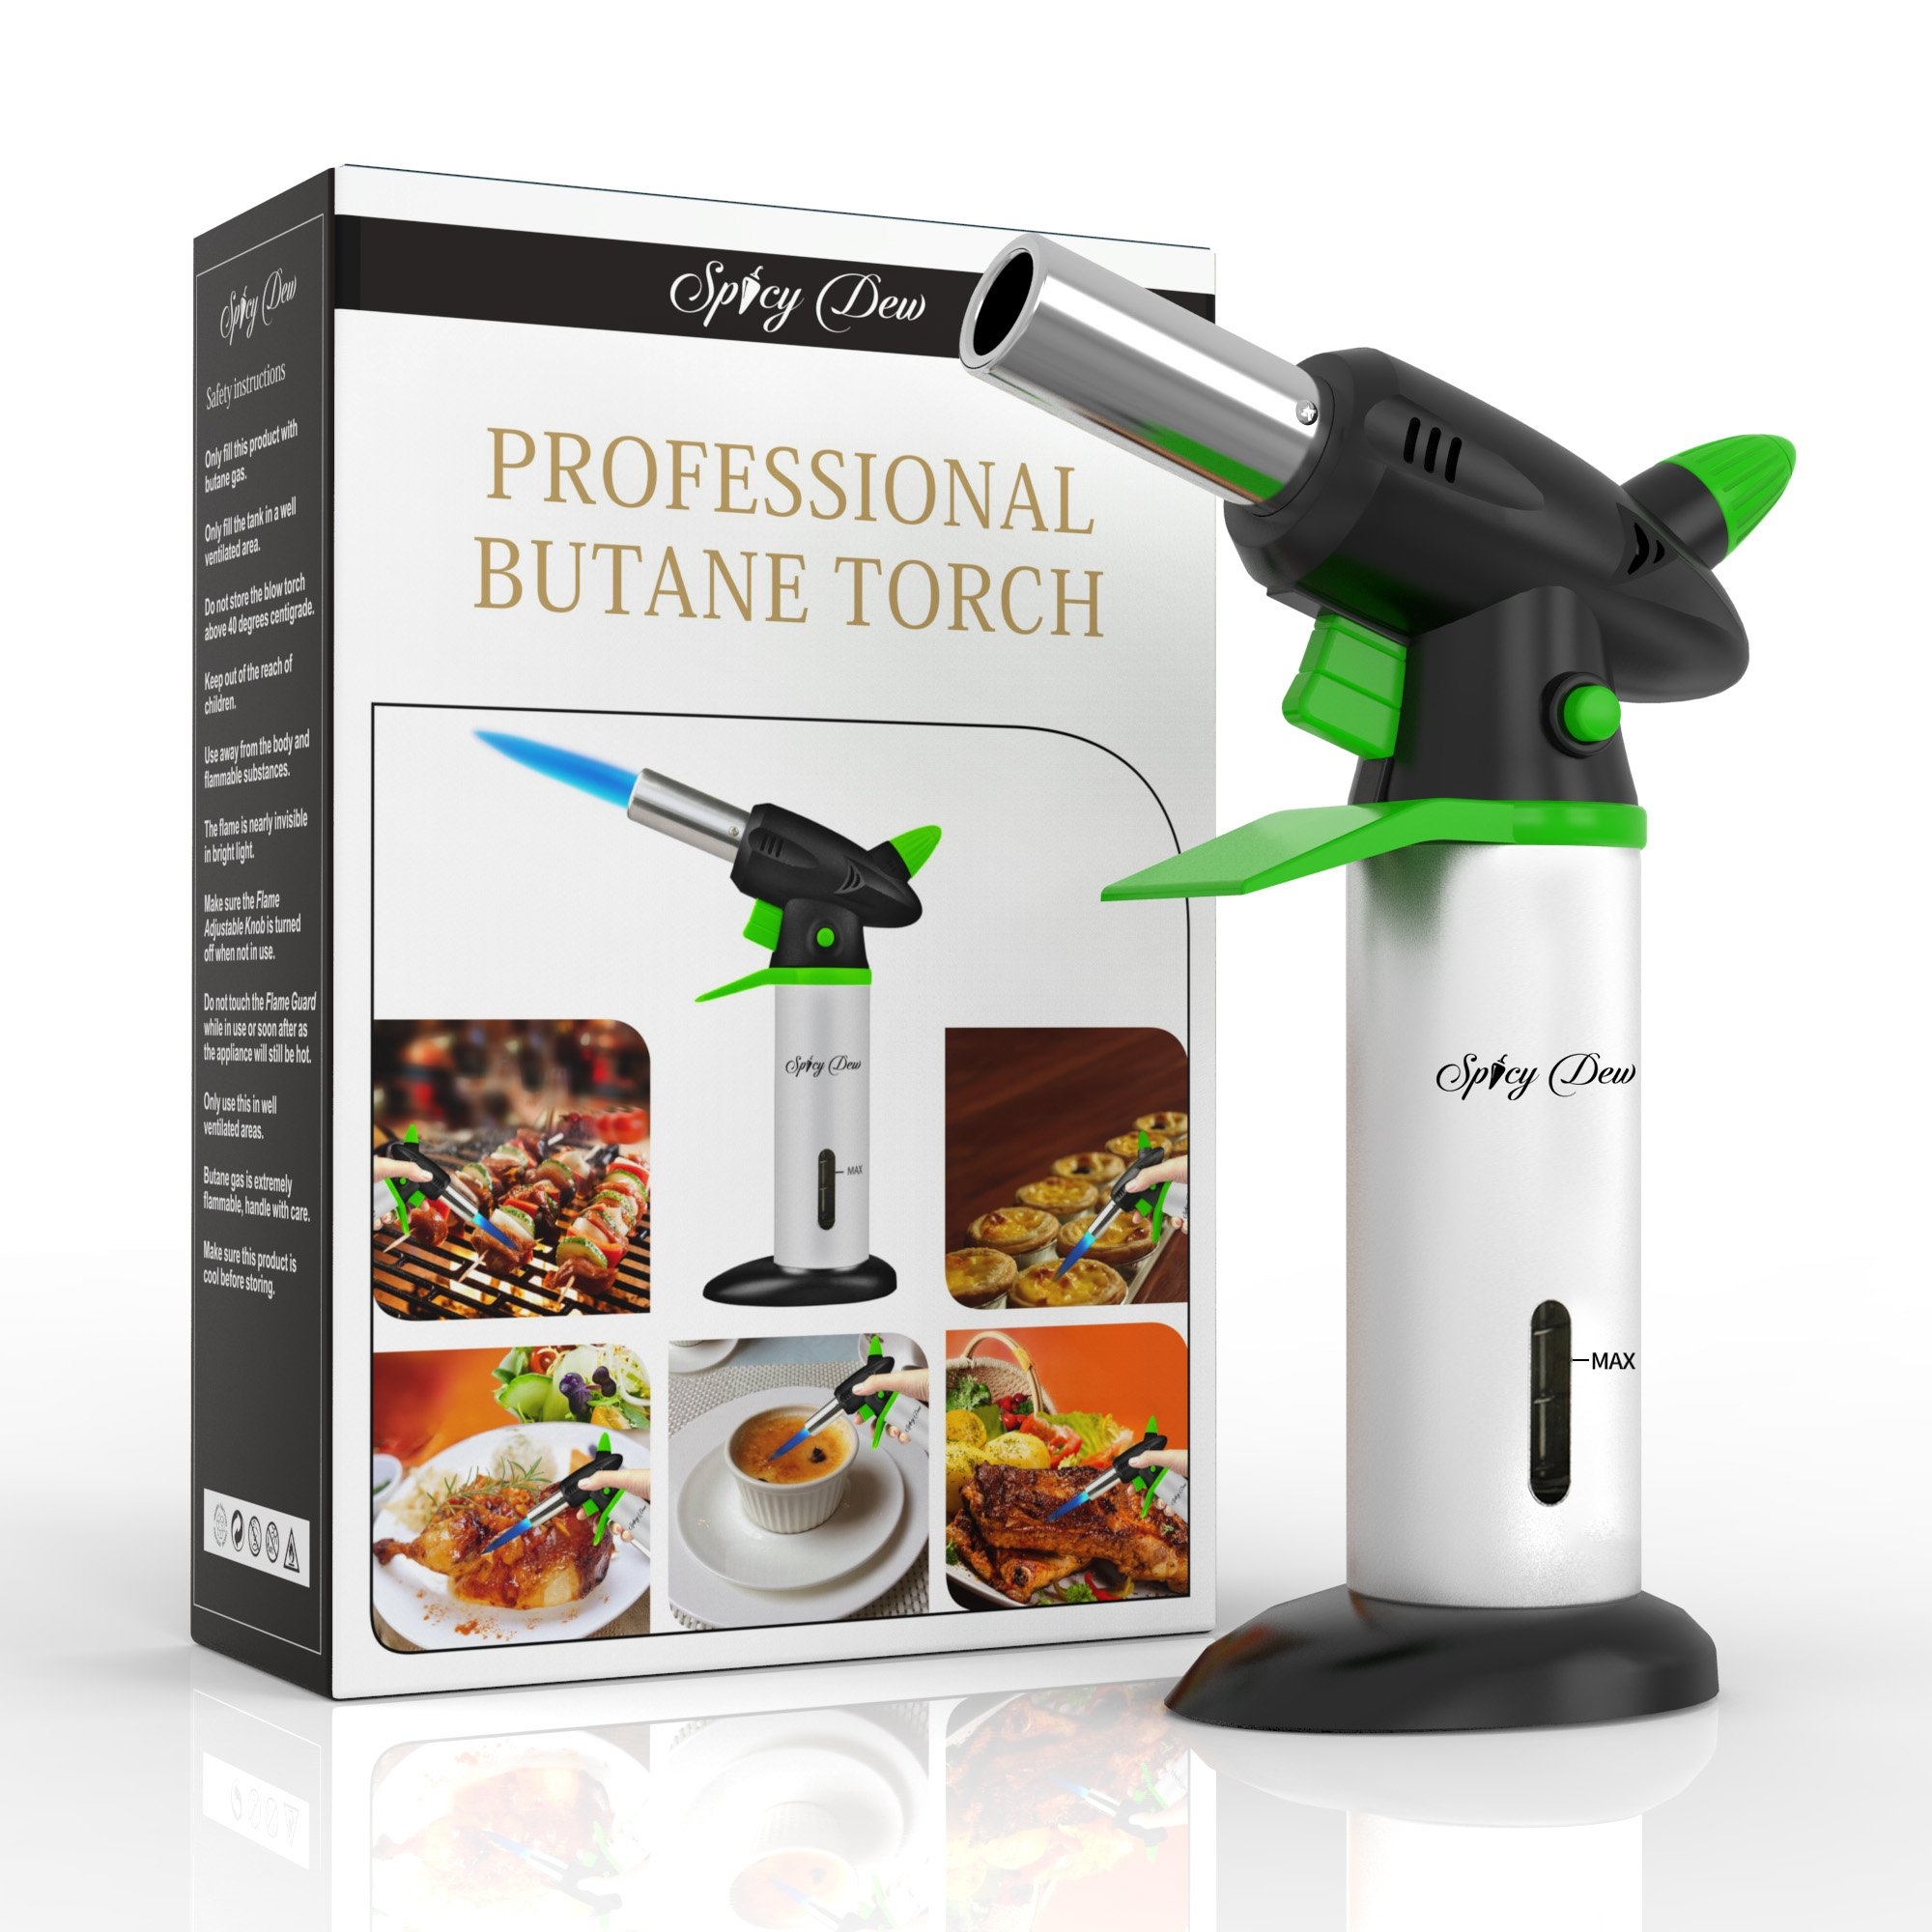 Blow Torch - Best Creme Brulee Torch - Refillable Professional Kitchen Torch with Safety Lock and Adjustable Flame - Culinary Torch - Micro Butane Torch with Fuel Gauge - Cooking Torch - Food Torch